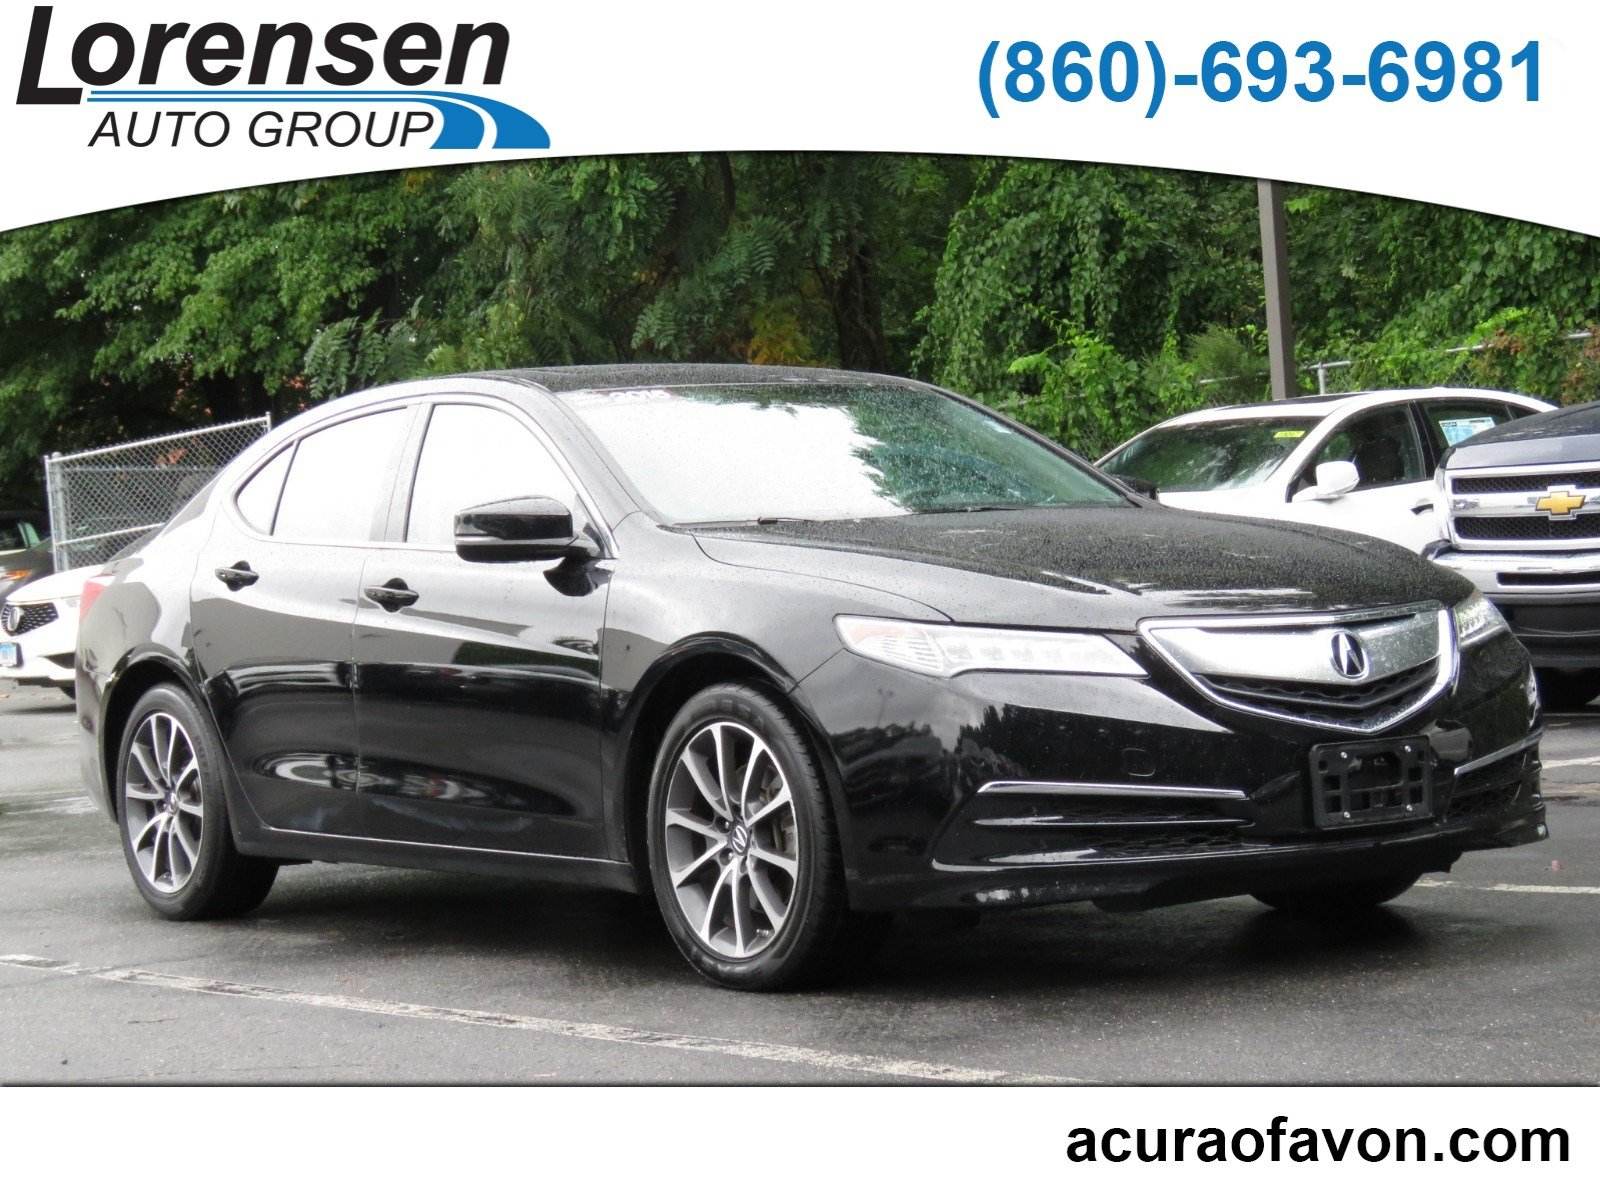 Pre Owned 2015 Acura TLX V6 Tech 4dr Car in Westbrook 4130